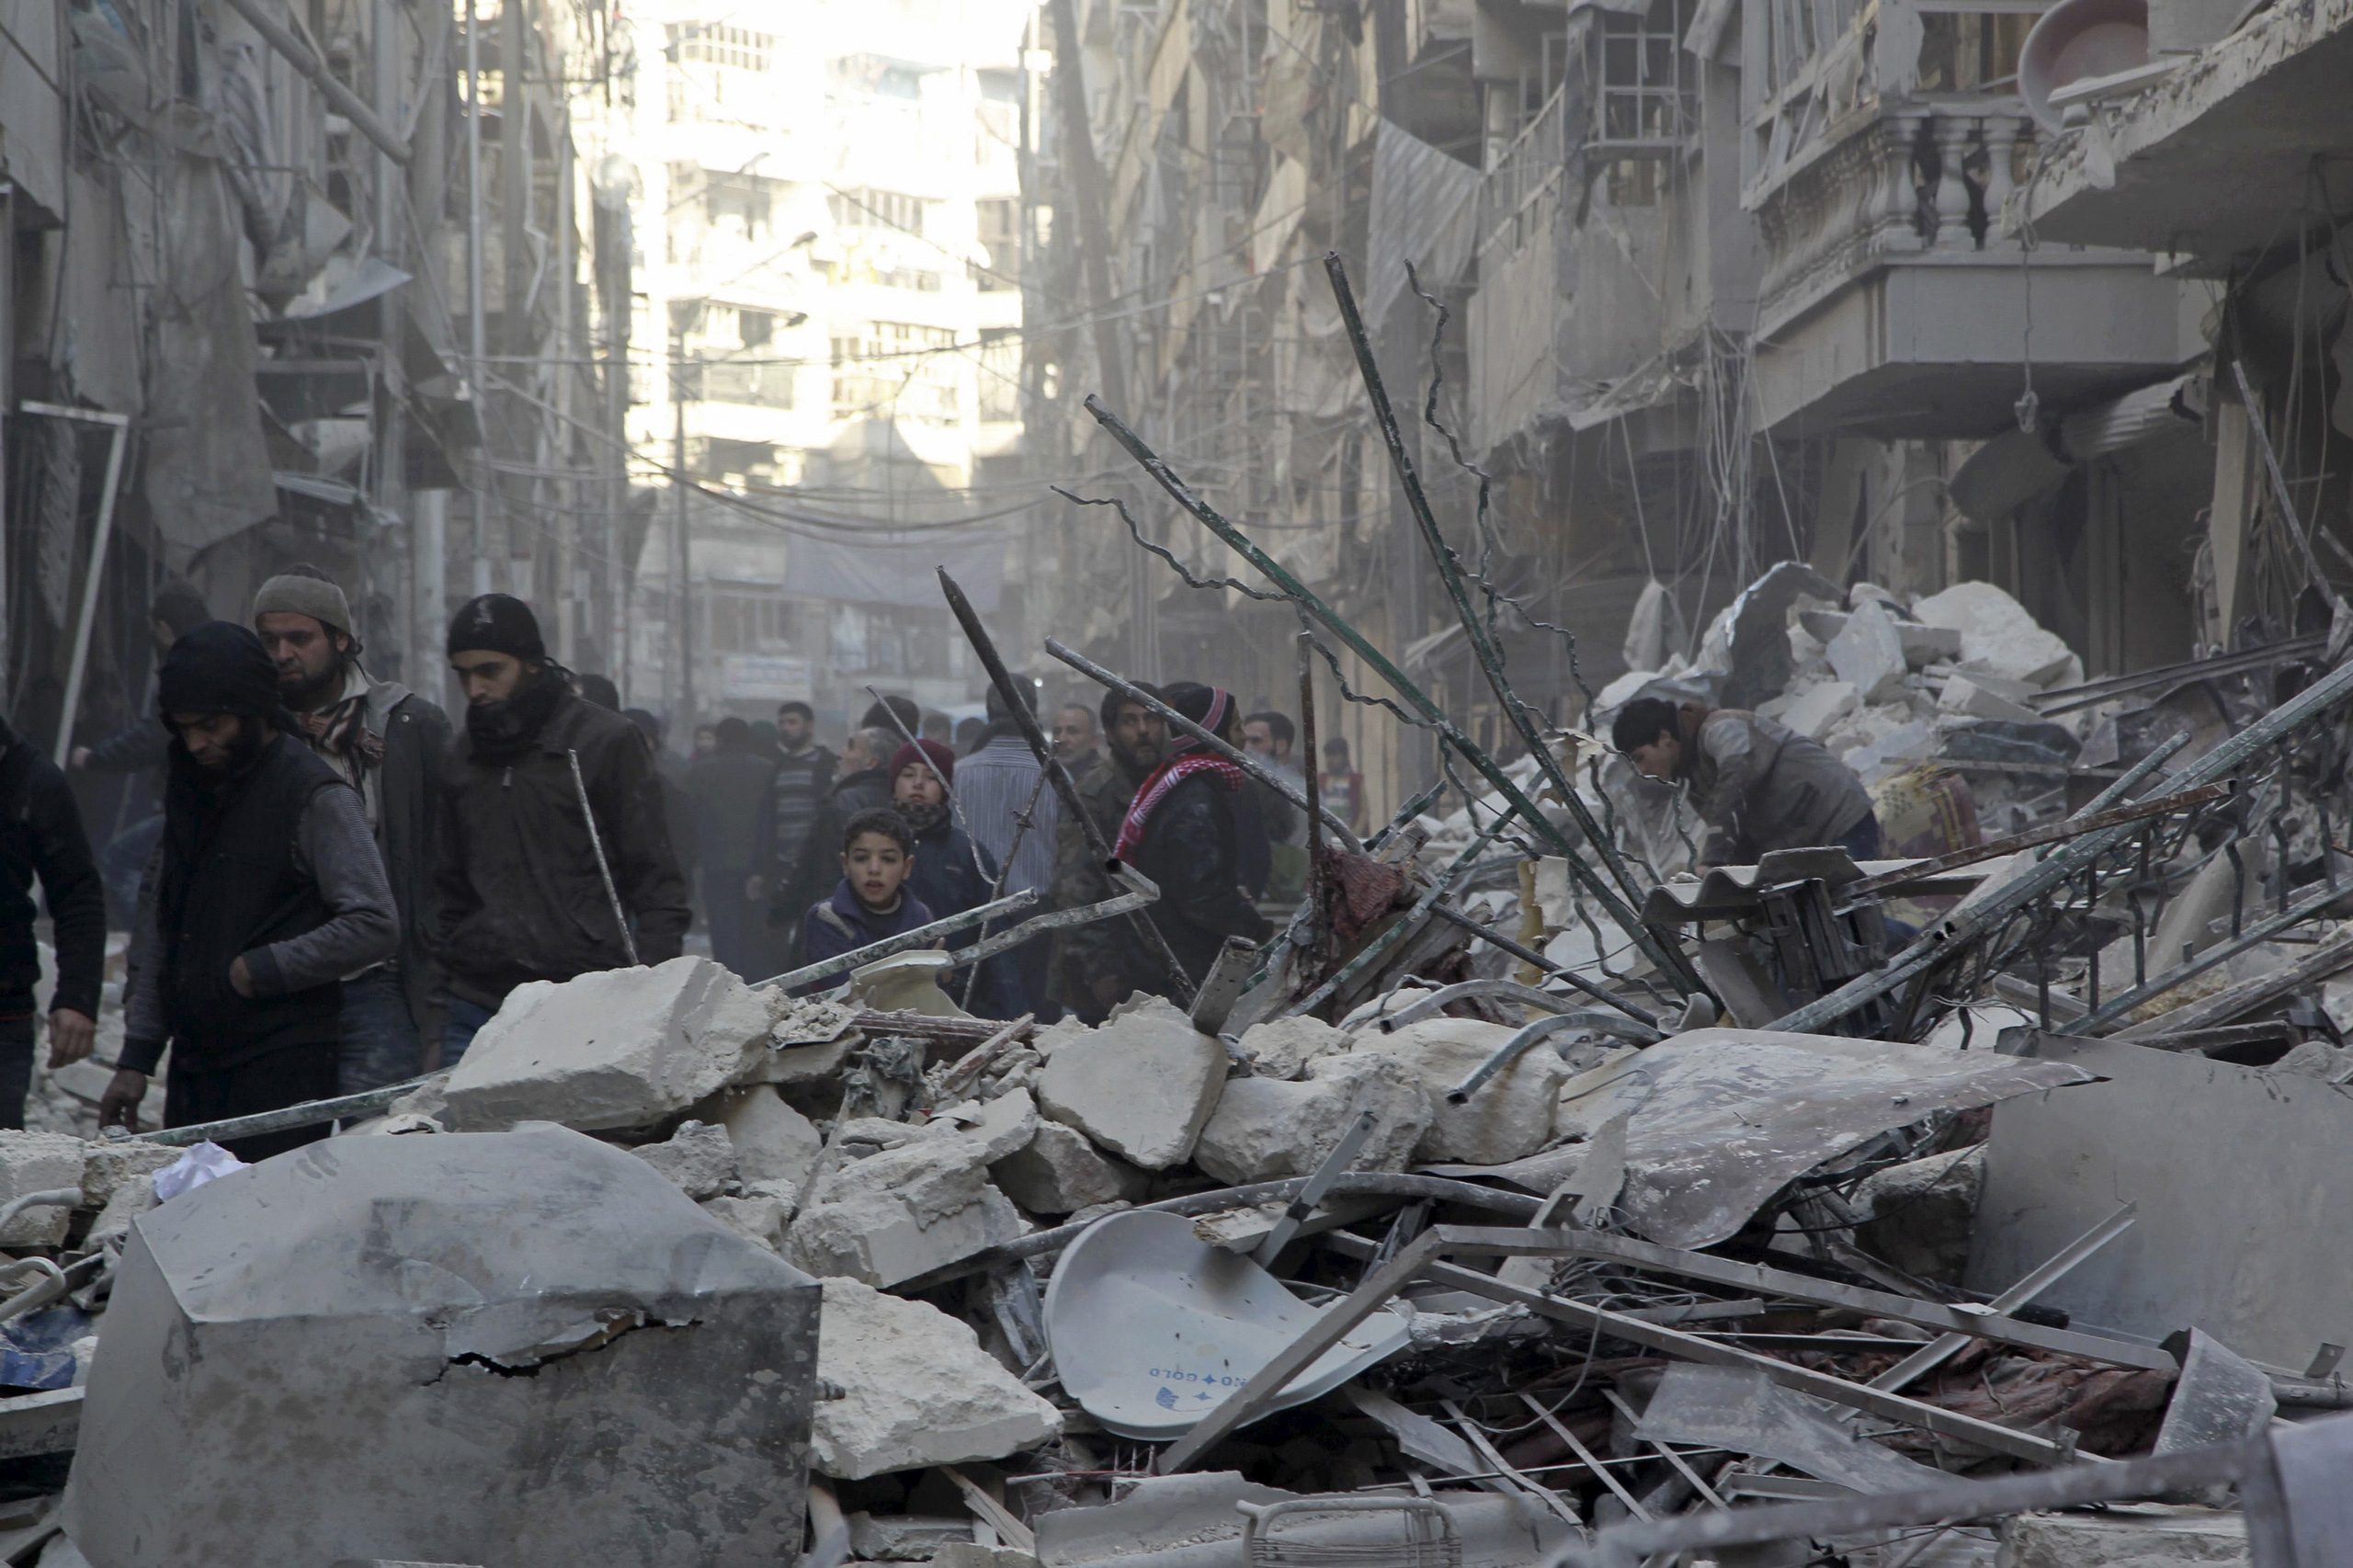 Residents inspect damage after airstrikes by pro-Syrian government forces in the rebel held Al-Shaar neighborhood of Aleppo, Syria, on Feb. 4, 2016.